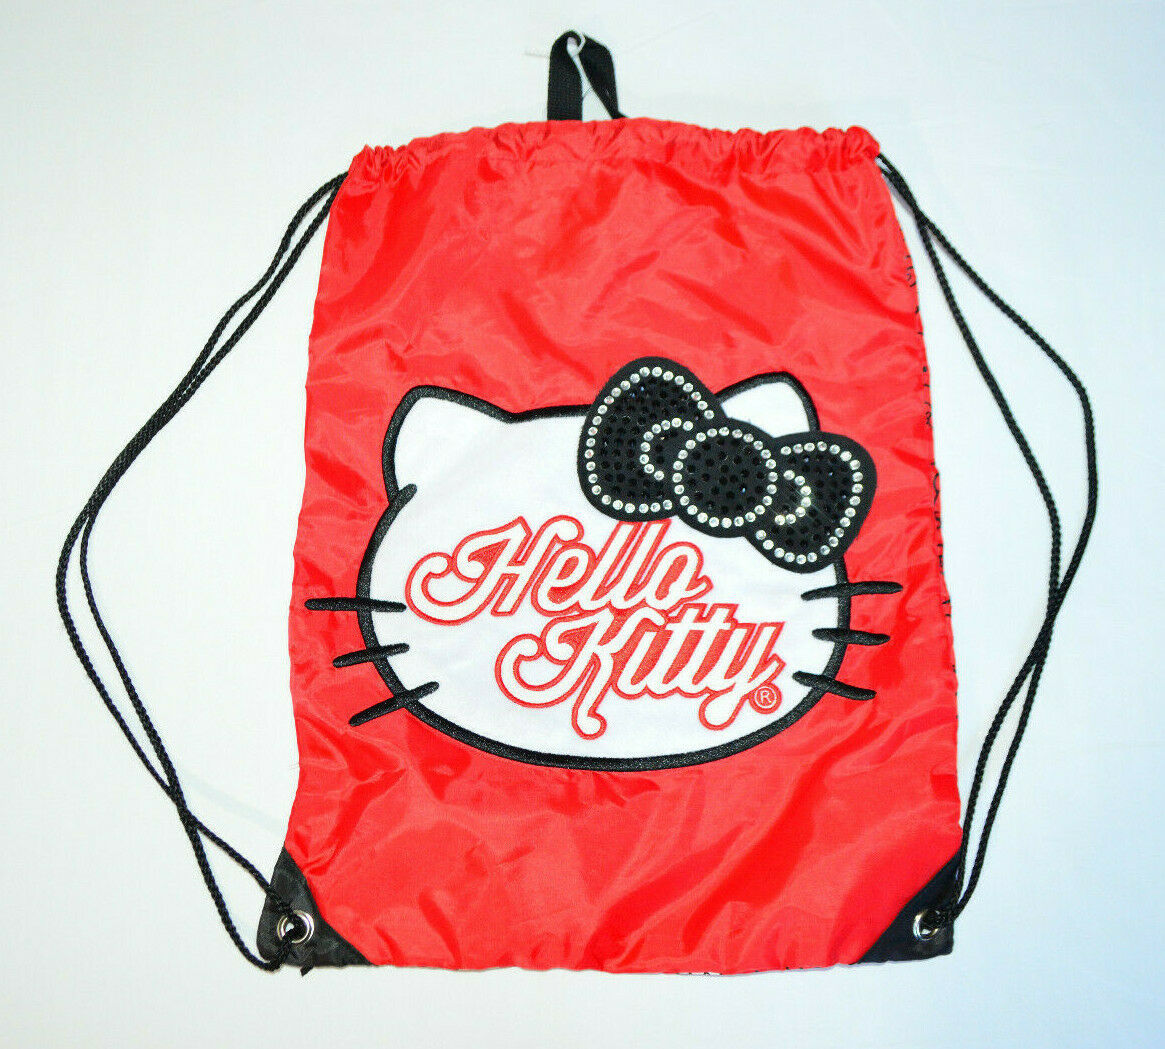 adedf4f69 57. 57. Previous. Hello Kitty By Sanrio Jeweled Drawstring Backpack Red  Loungefly